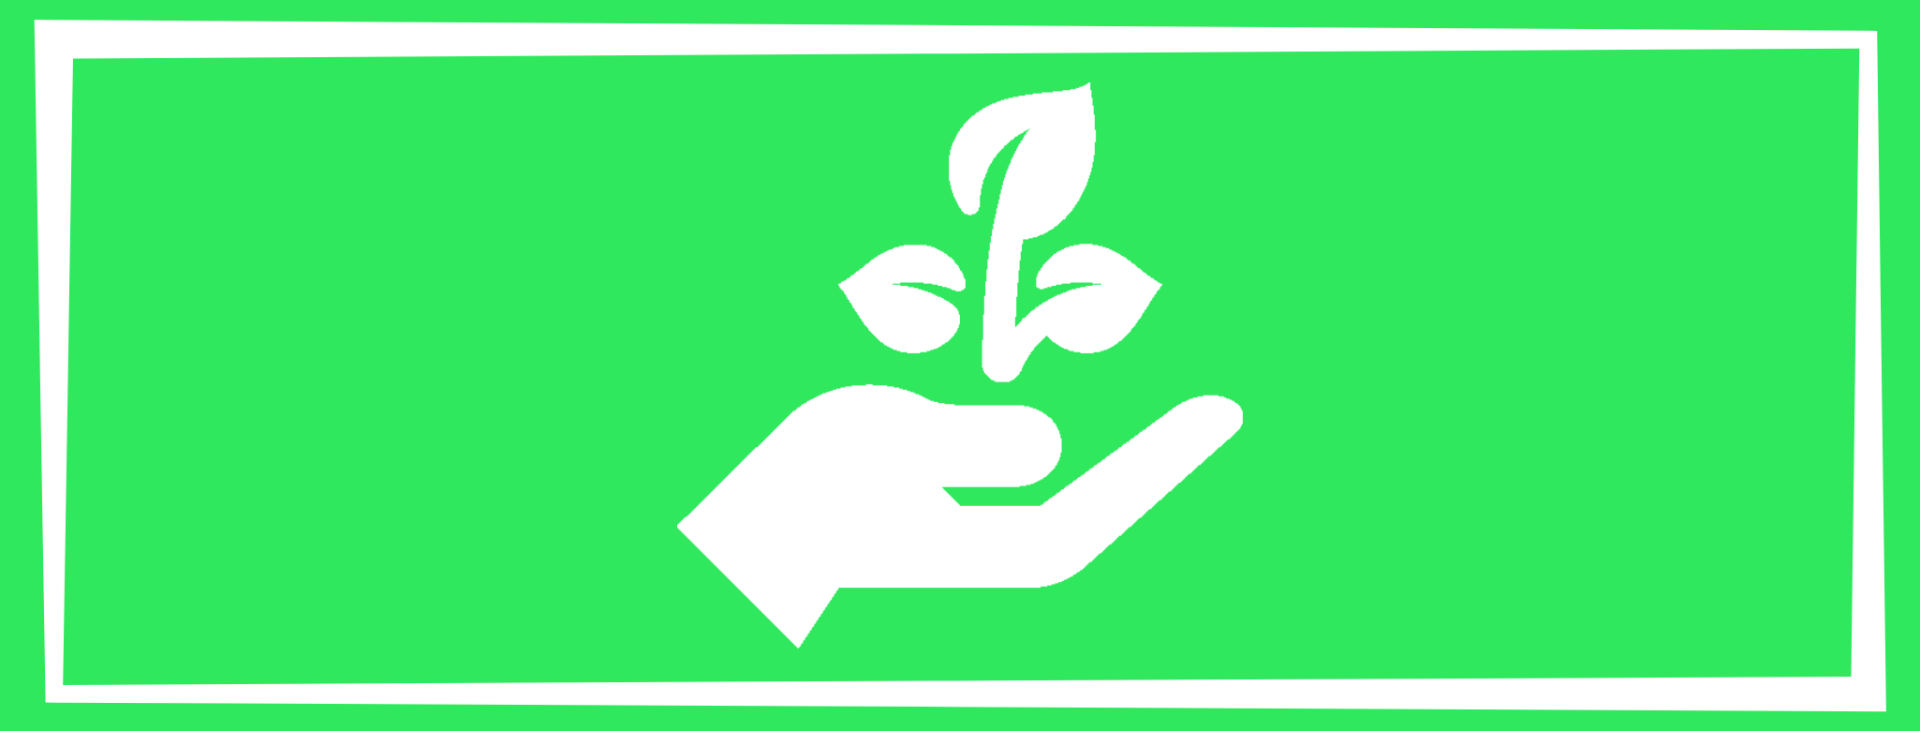 environmental wellness solid square with a hand holding a plant